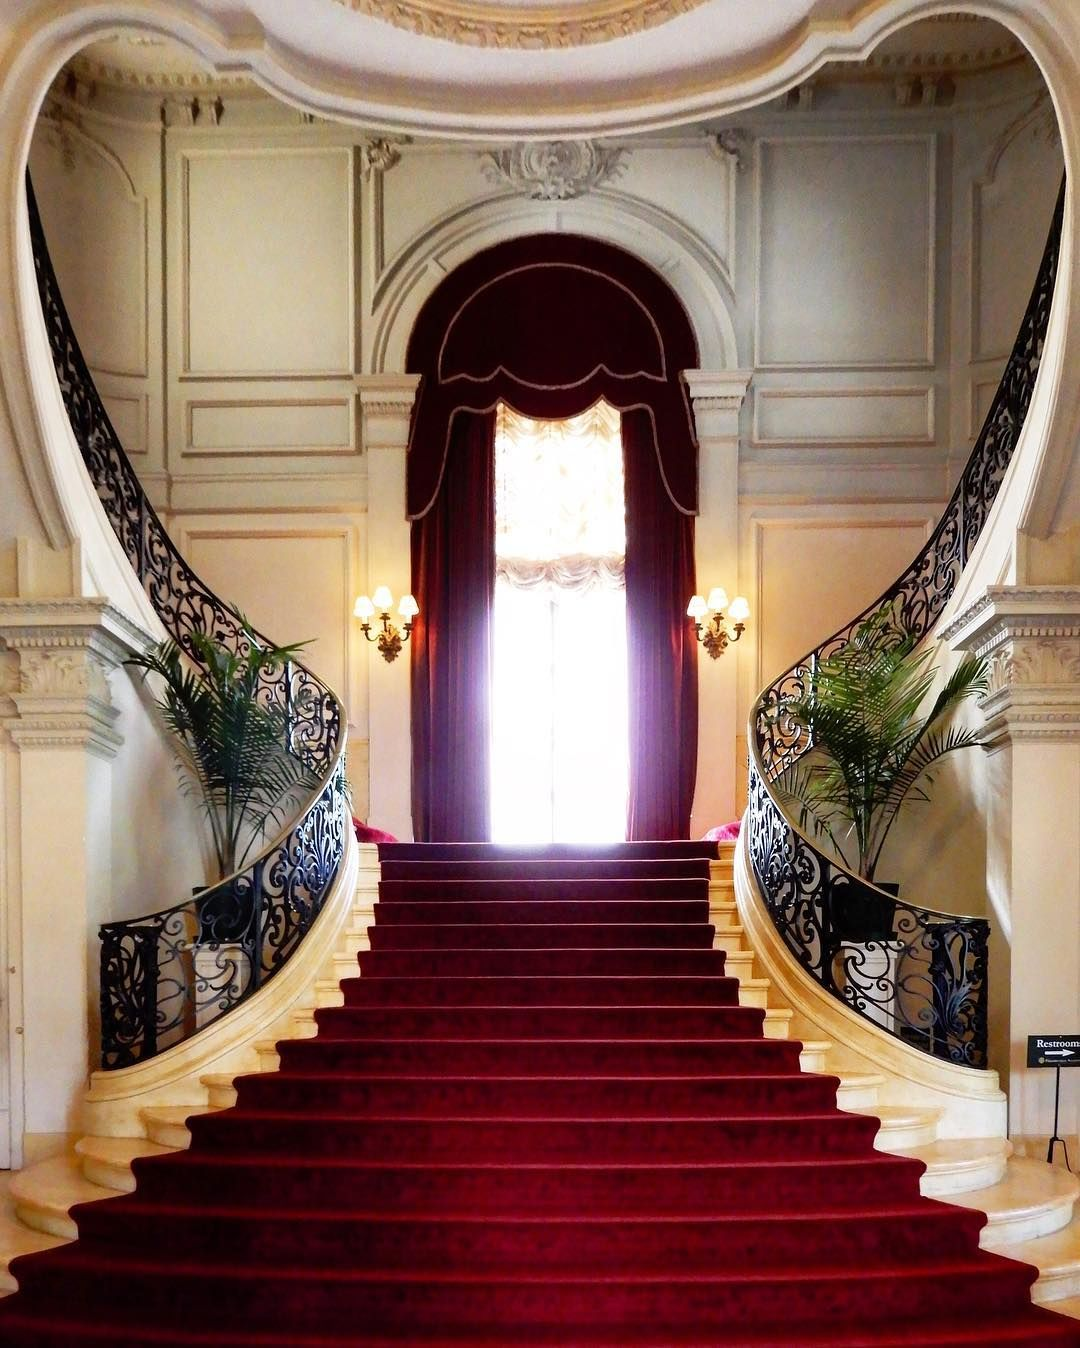 "James Hogarty on Instagram: ""#stanfordwhite #rosecliff #newportmansions #archilovers #valentinesday #bellevueavenuehistoricdistrict #heartshapedstaircase"""